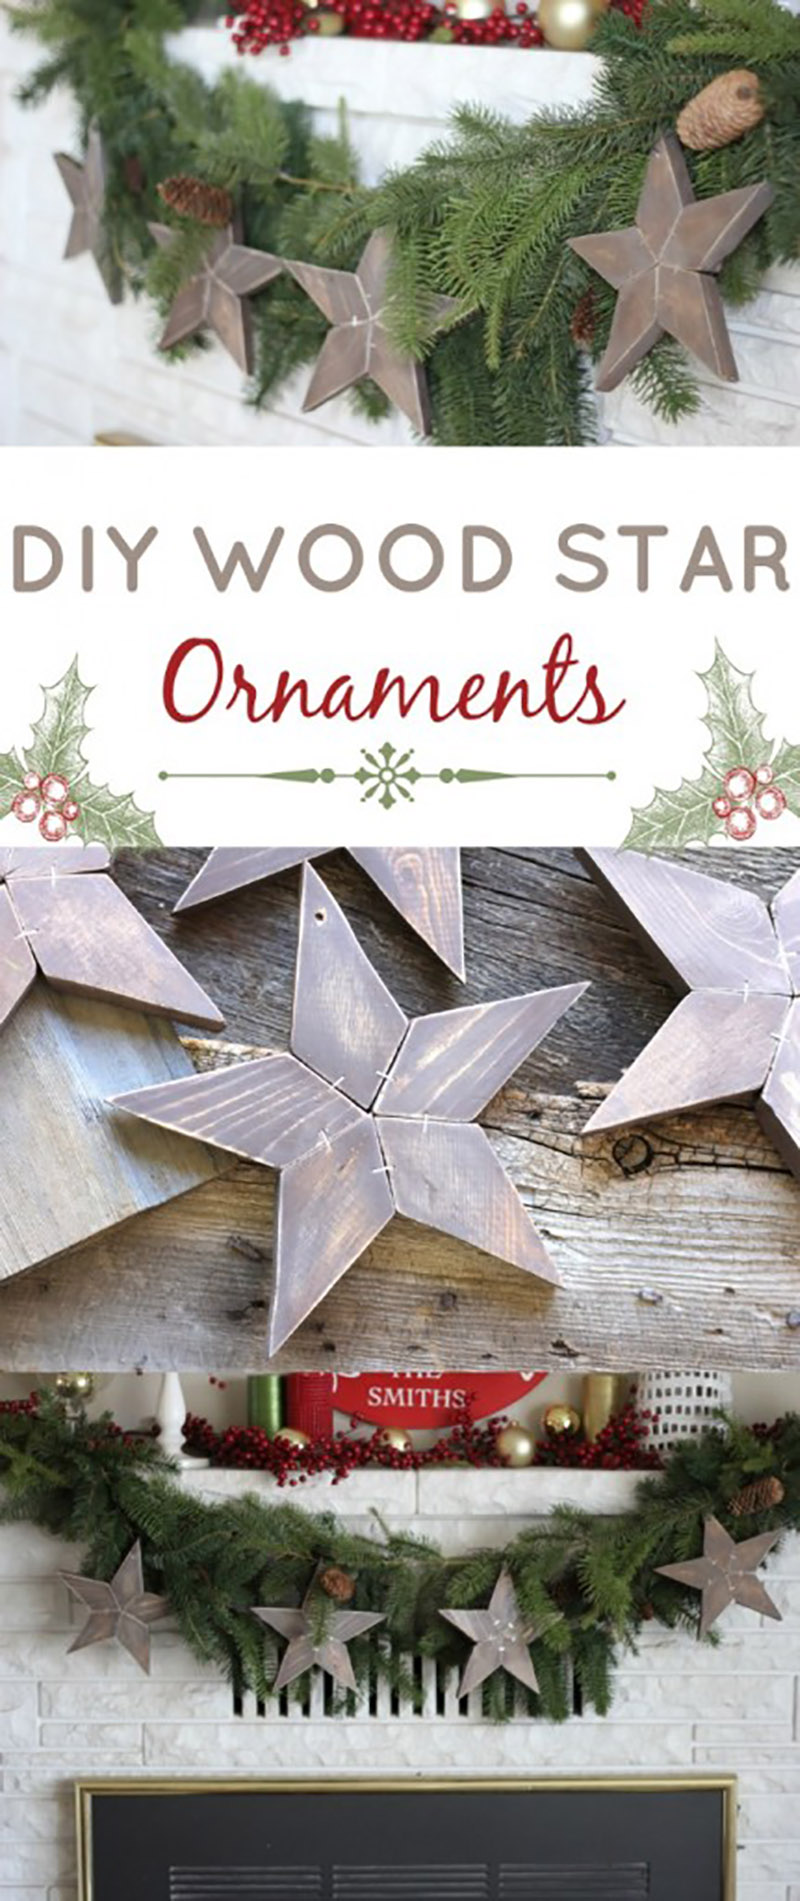 Pottery Barn Inspired Wooden Star Ornaments10